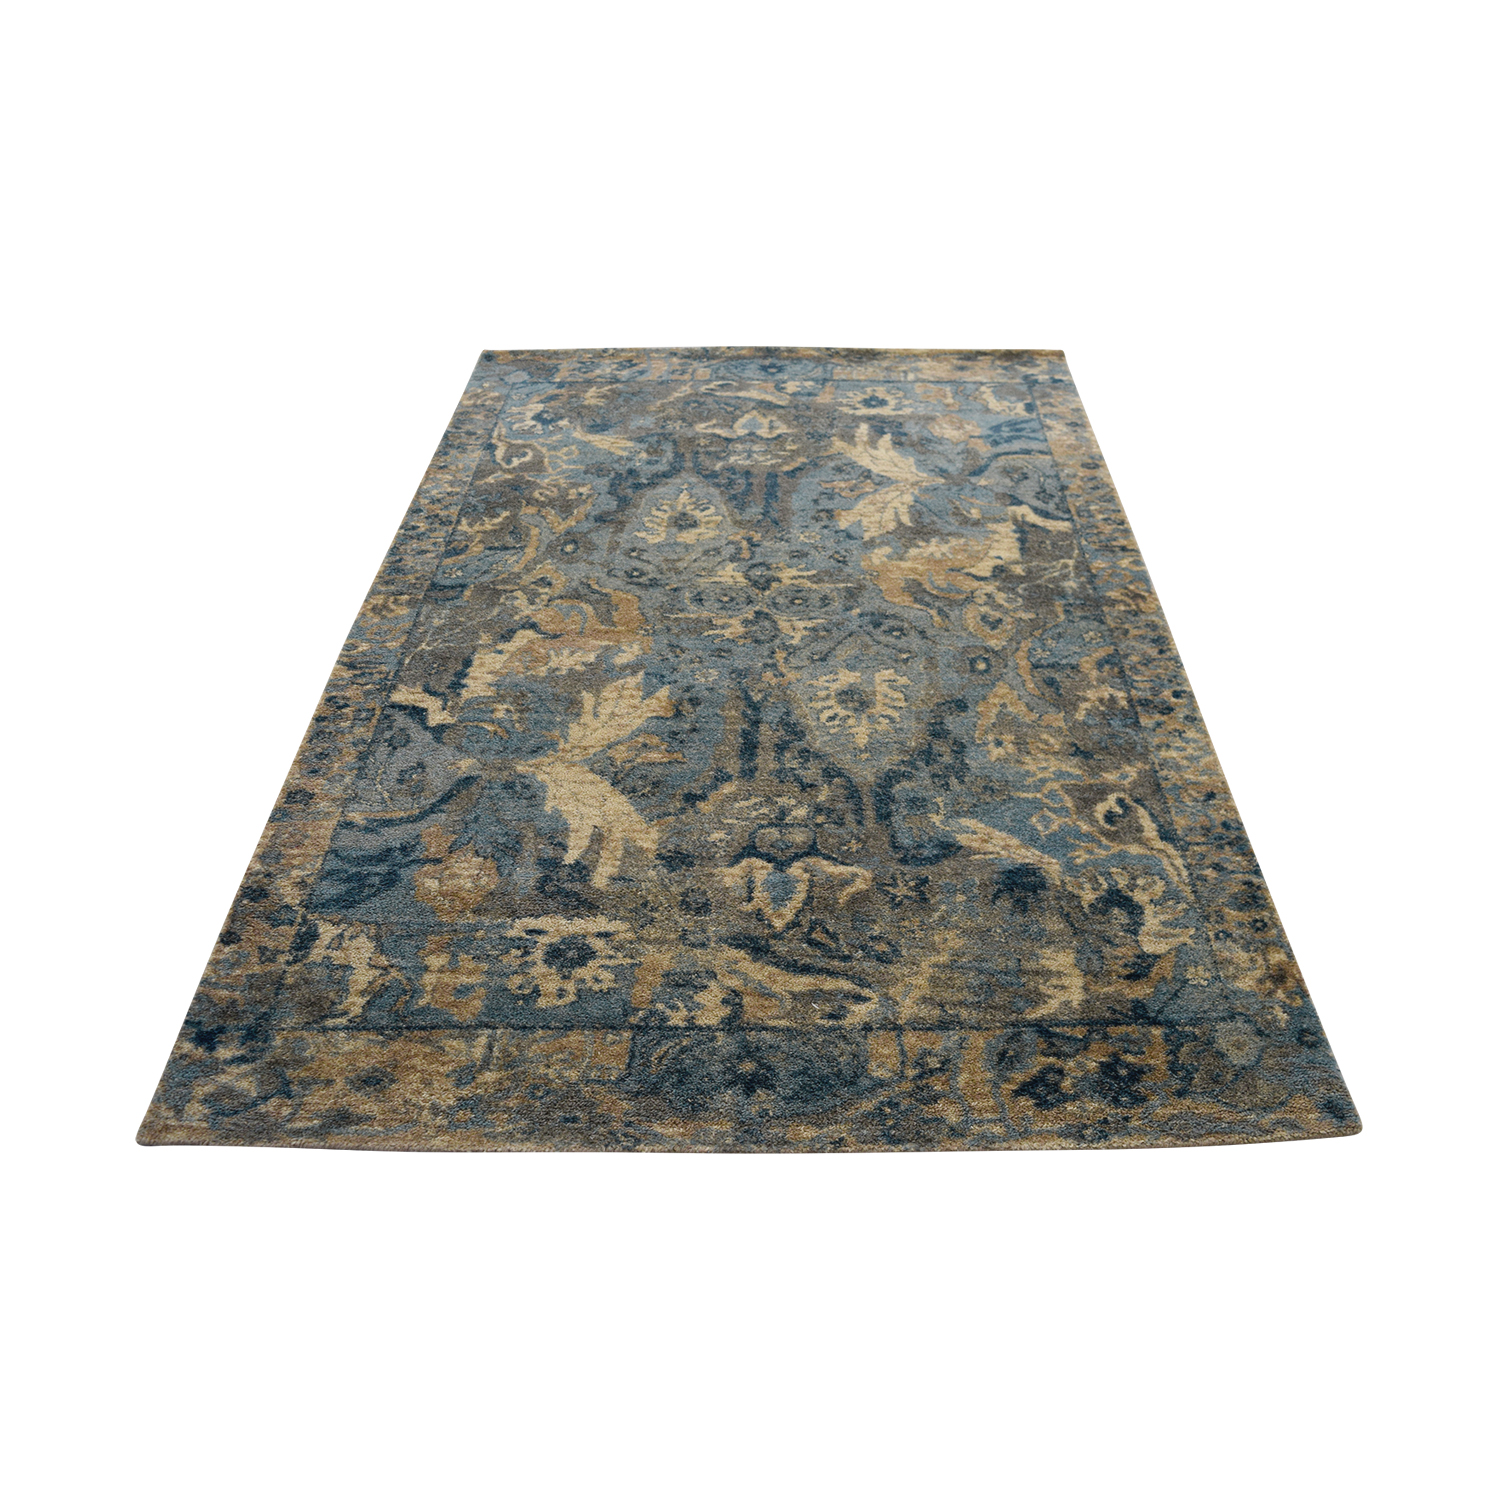 Obeetee Obeetee Blue Grey and Ivory Wool Rug used